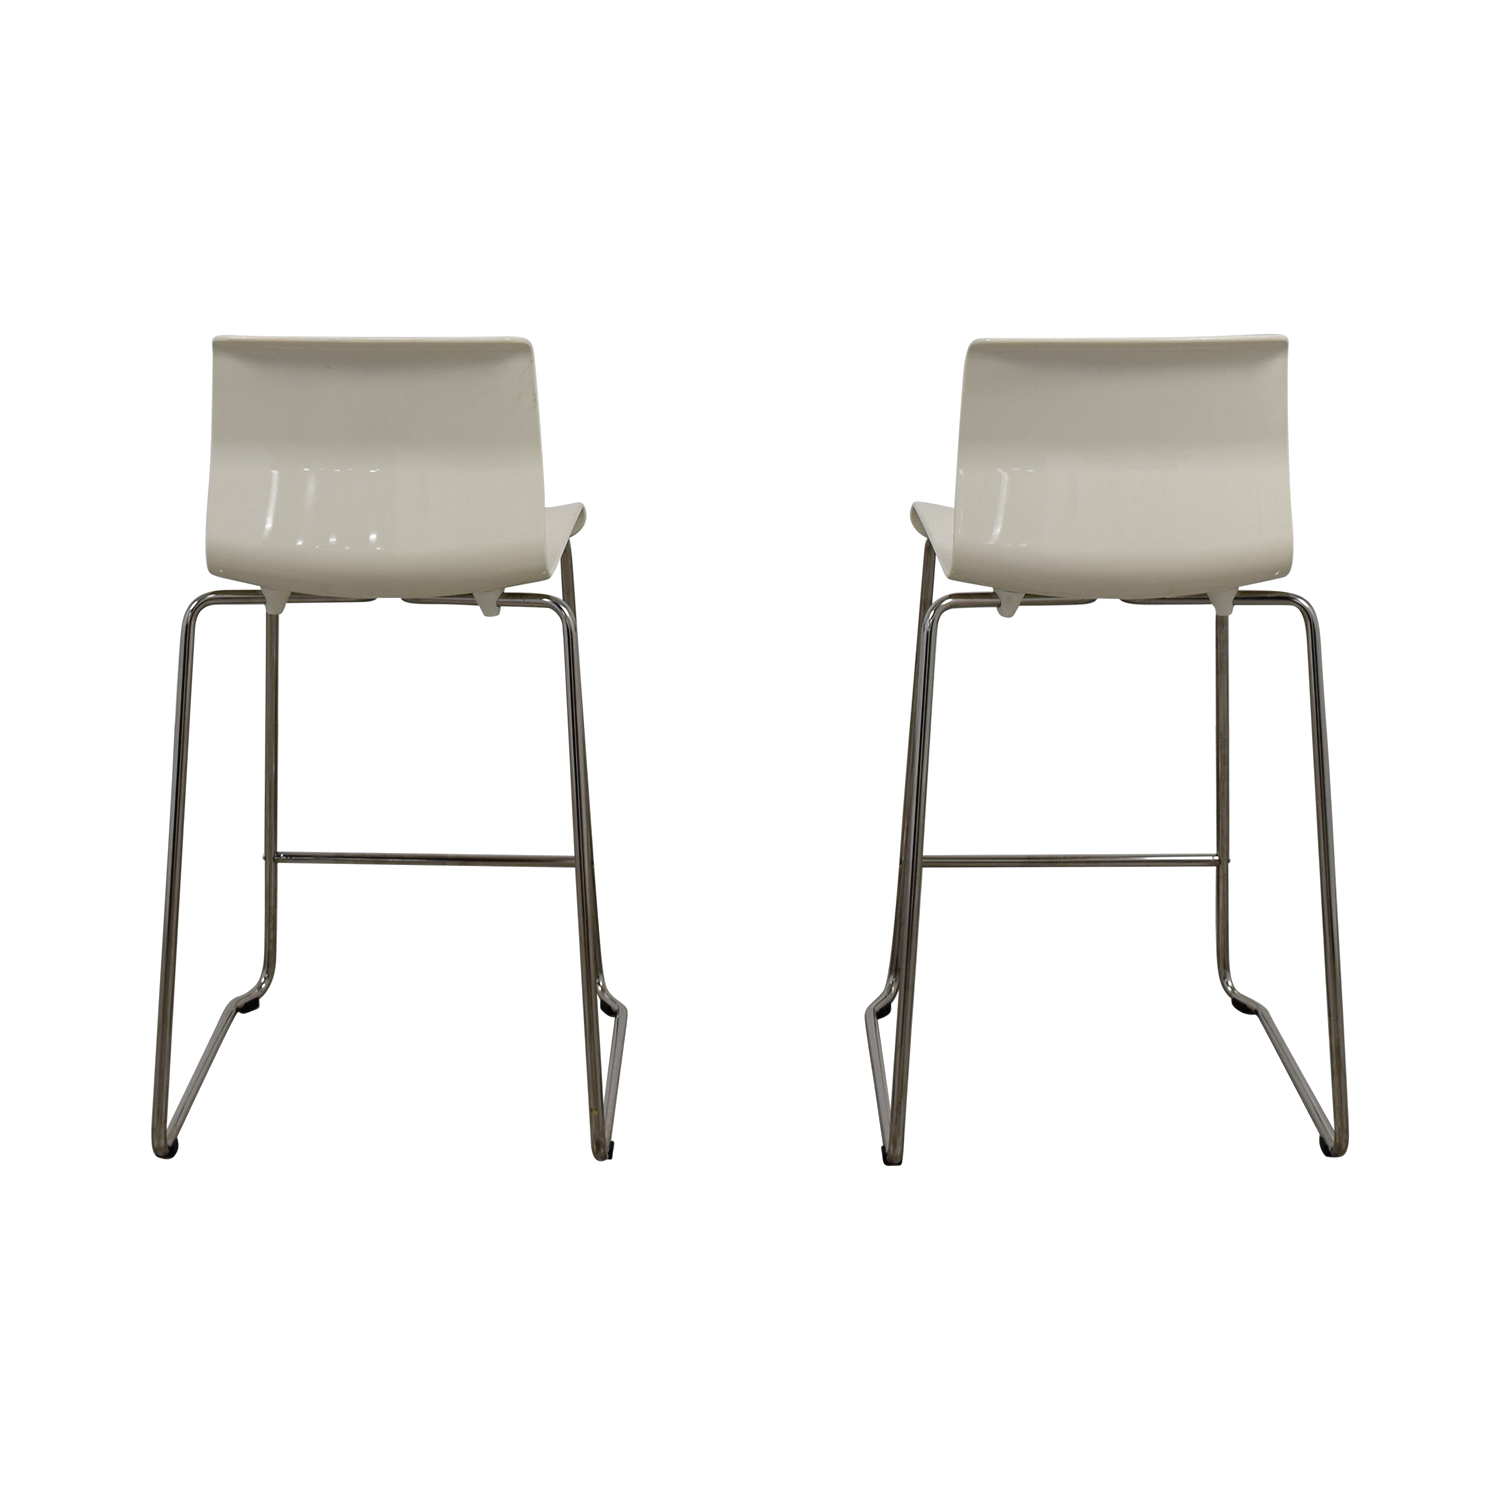 IKEA IKEA White Bar Stools used